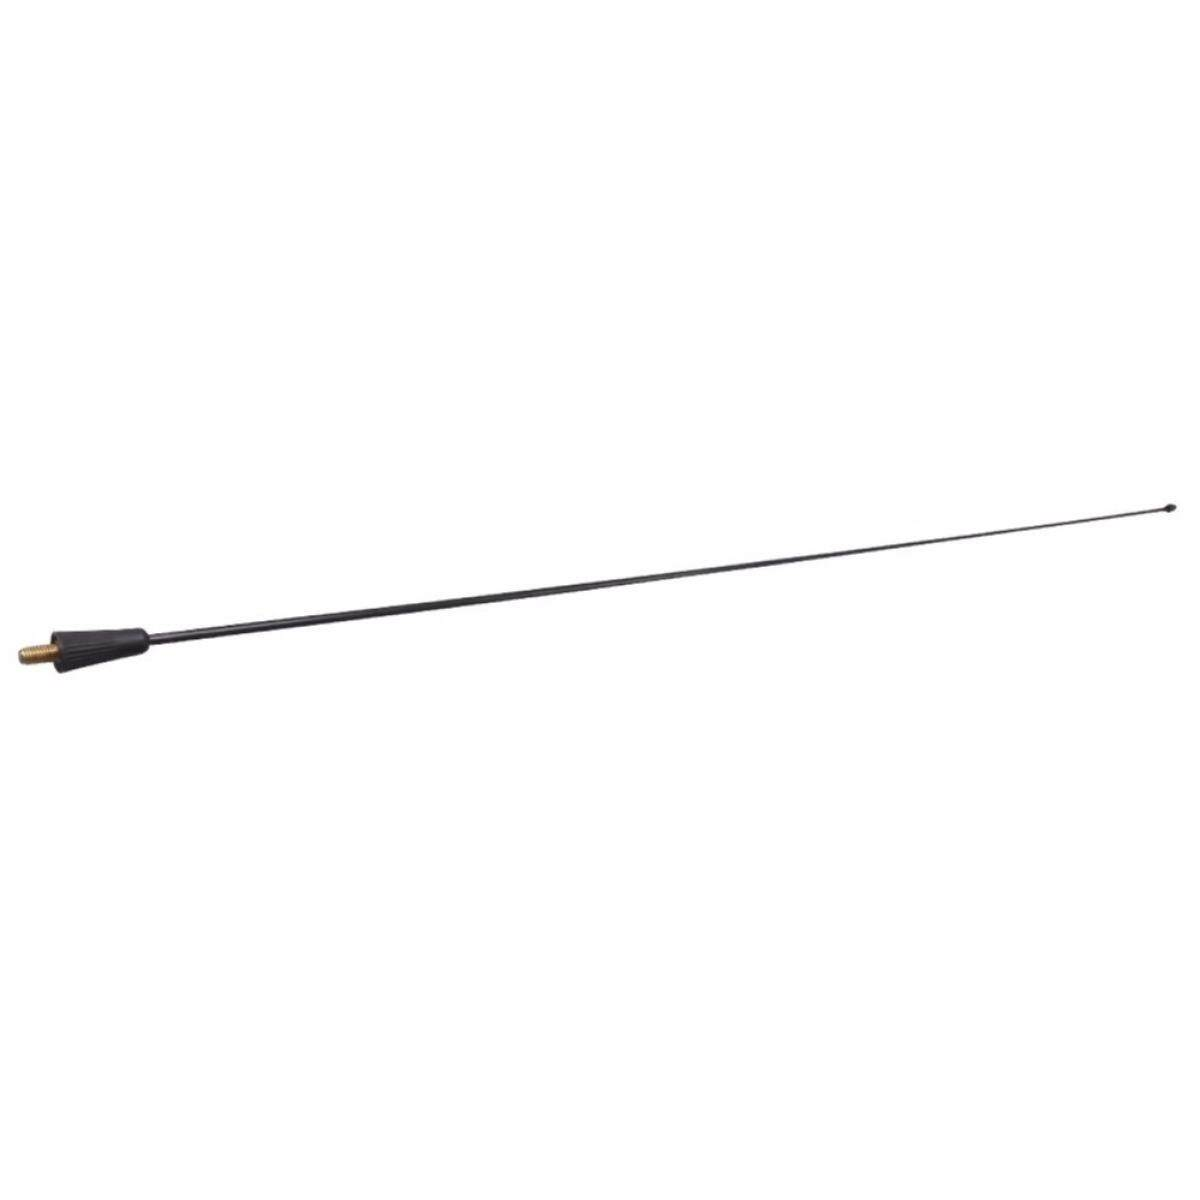 AERIAL ANTENNA FEEDER SUITABLE FOR PERODUA VIVA REPLACEMENT POLE REFILL MAST